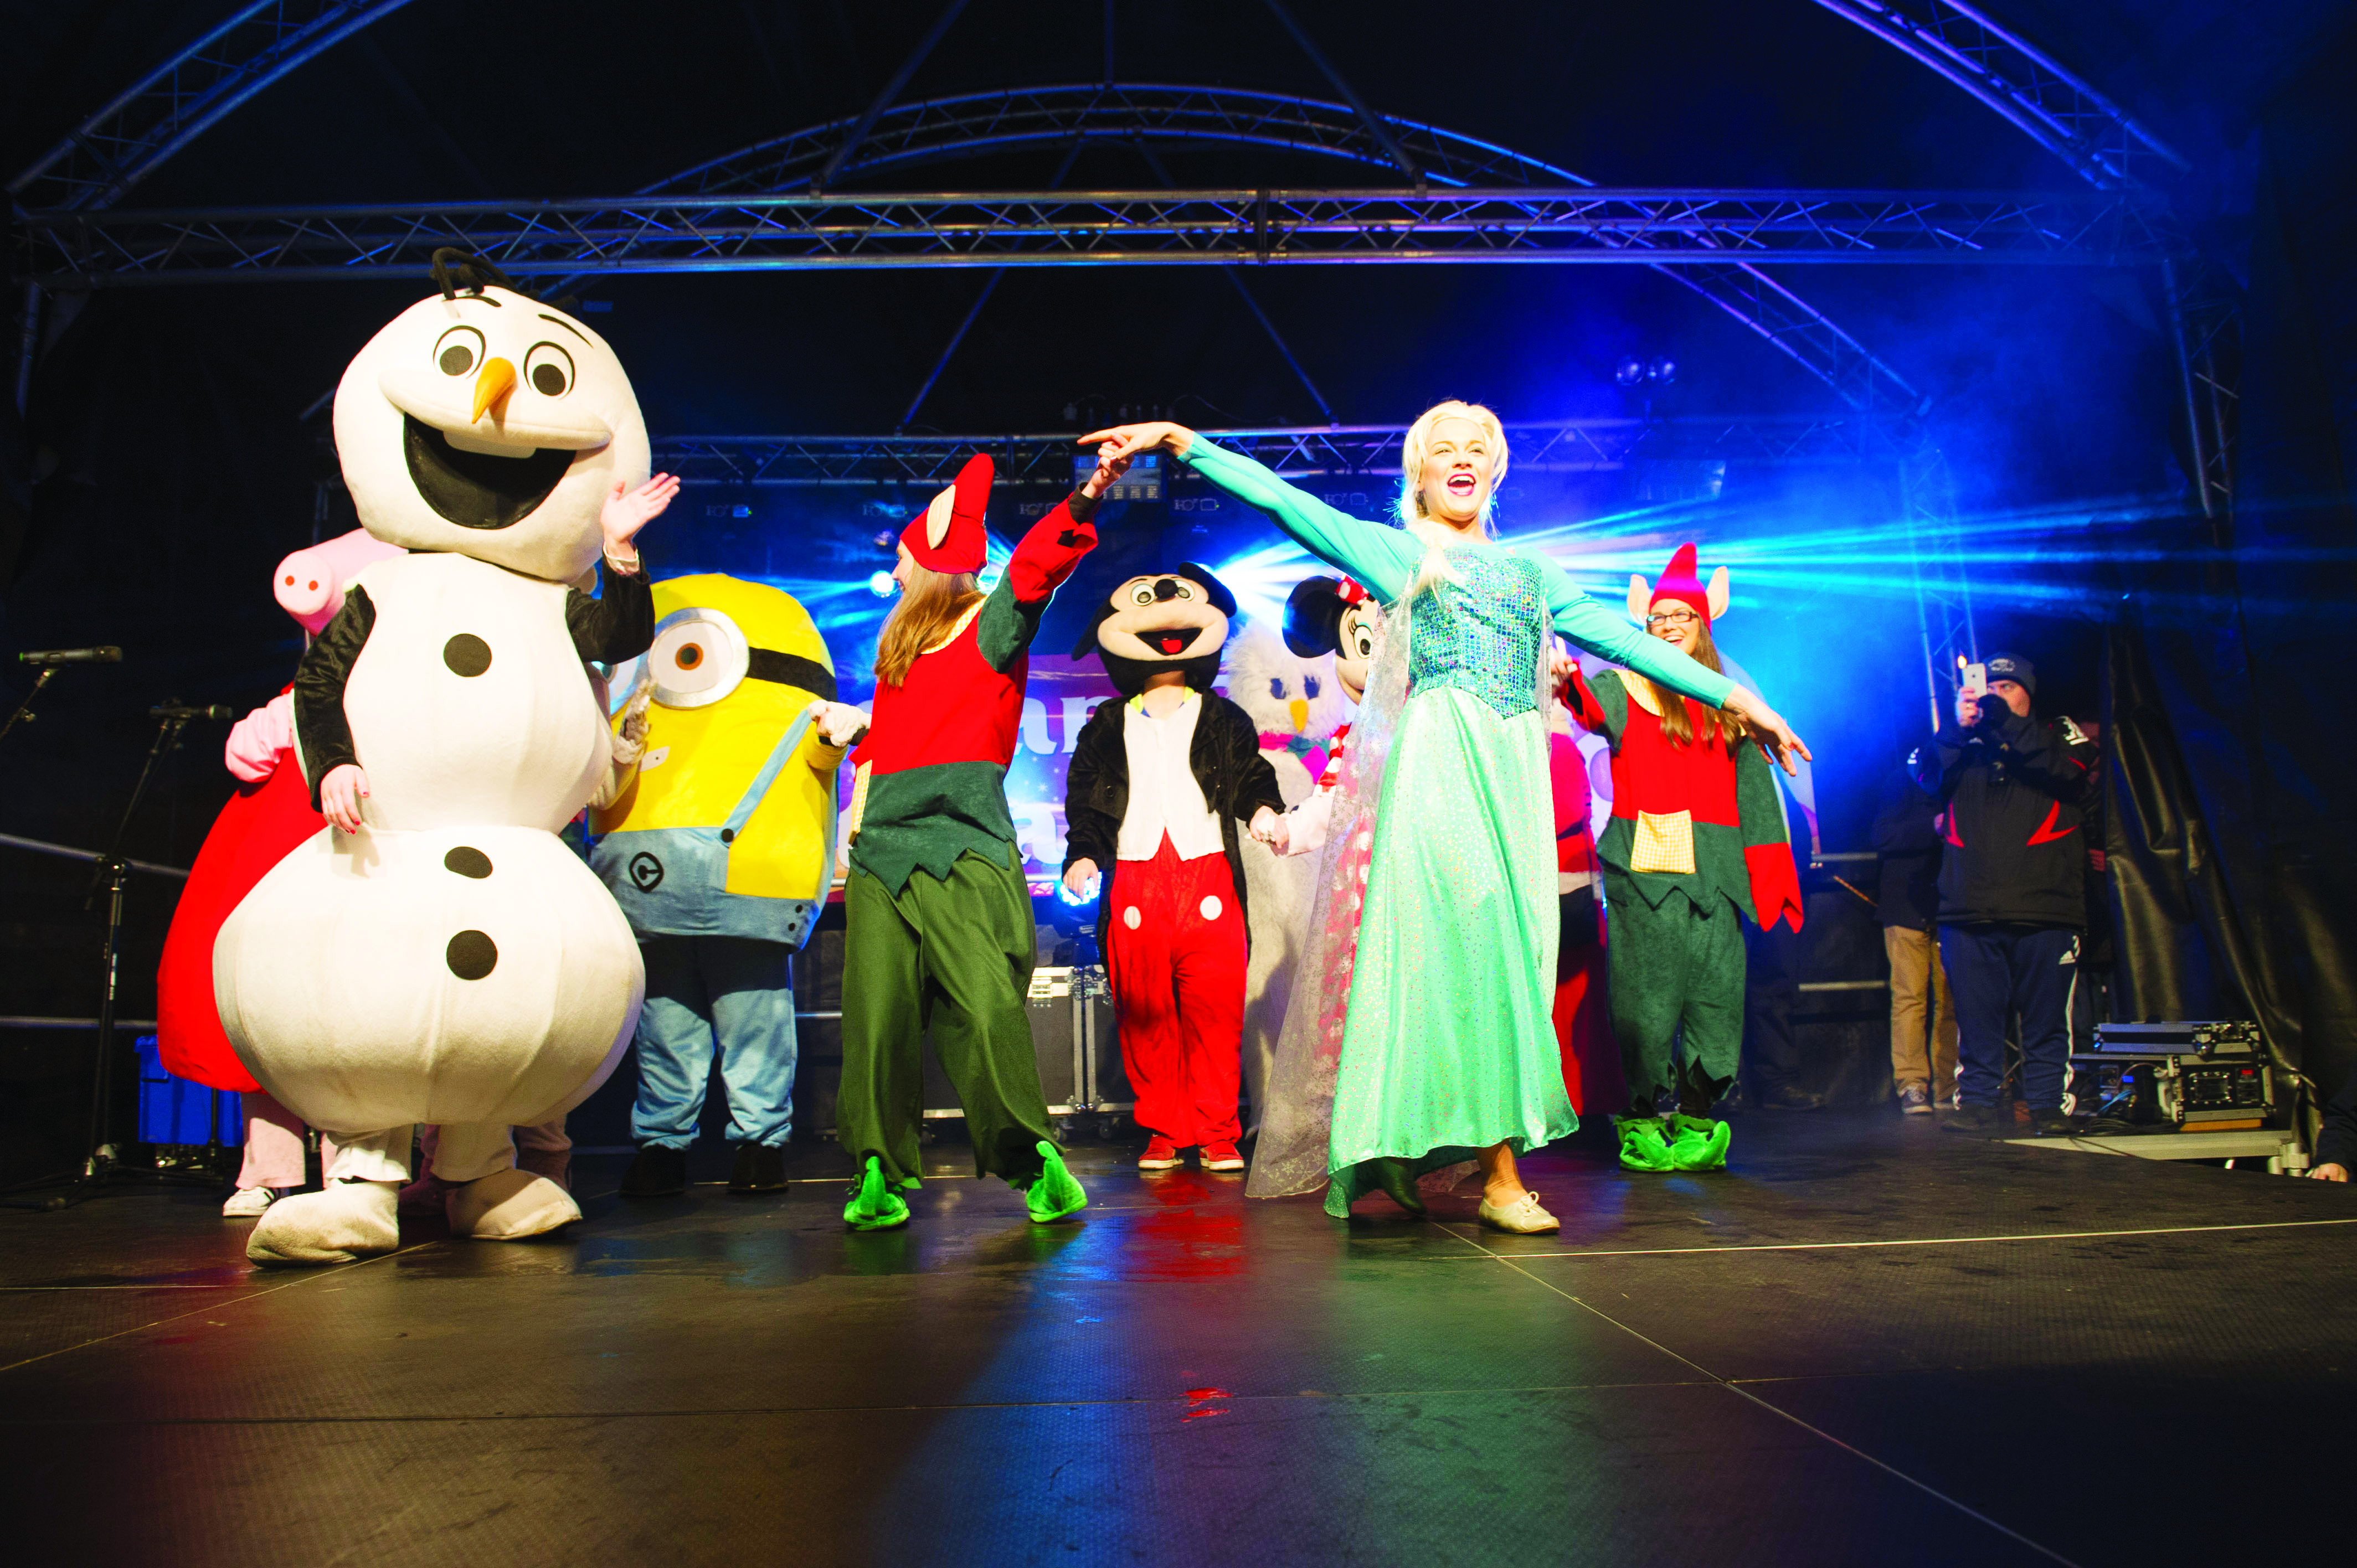 Elsa from Frozen and some of the other characters who attended the Monaghan Town Christmas Lights Switch-On, singing on stage at the event. ©Rory Geary/The Northern Standard